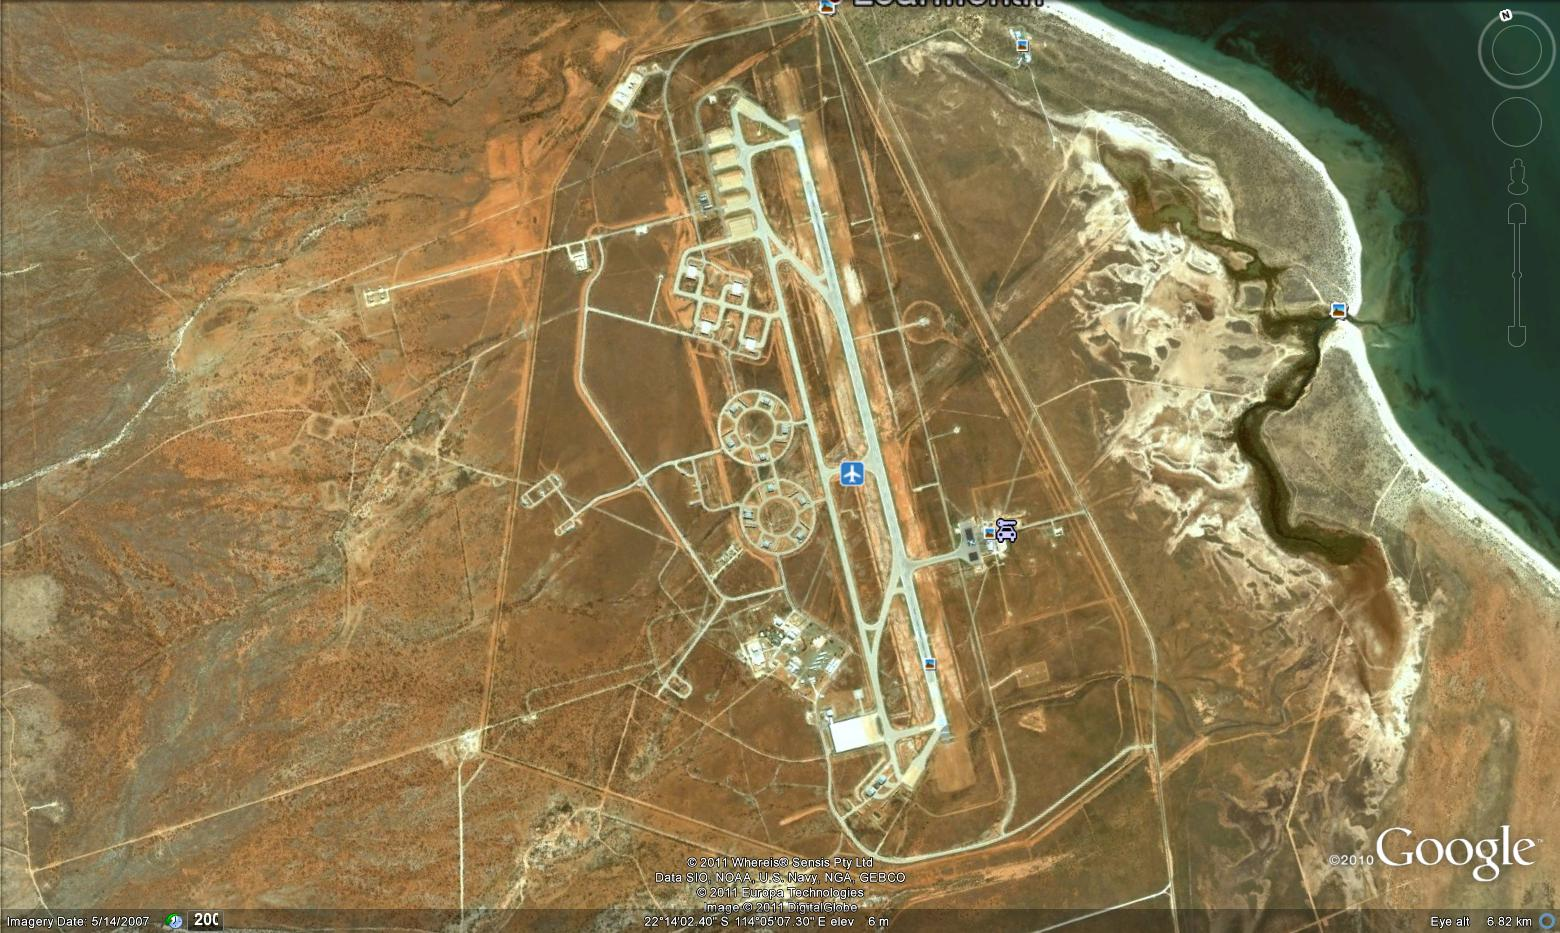 Airport south of HARRP Australia